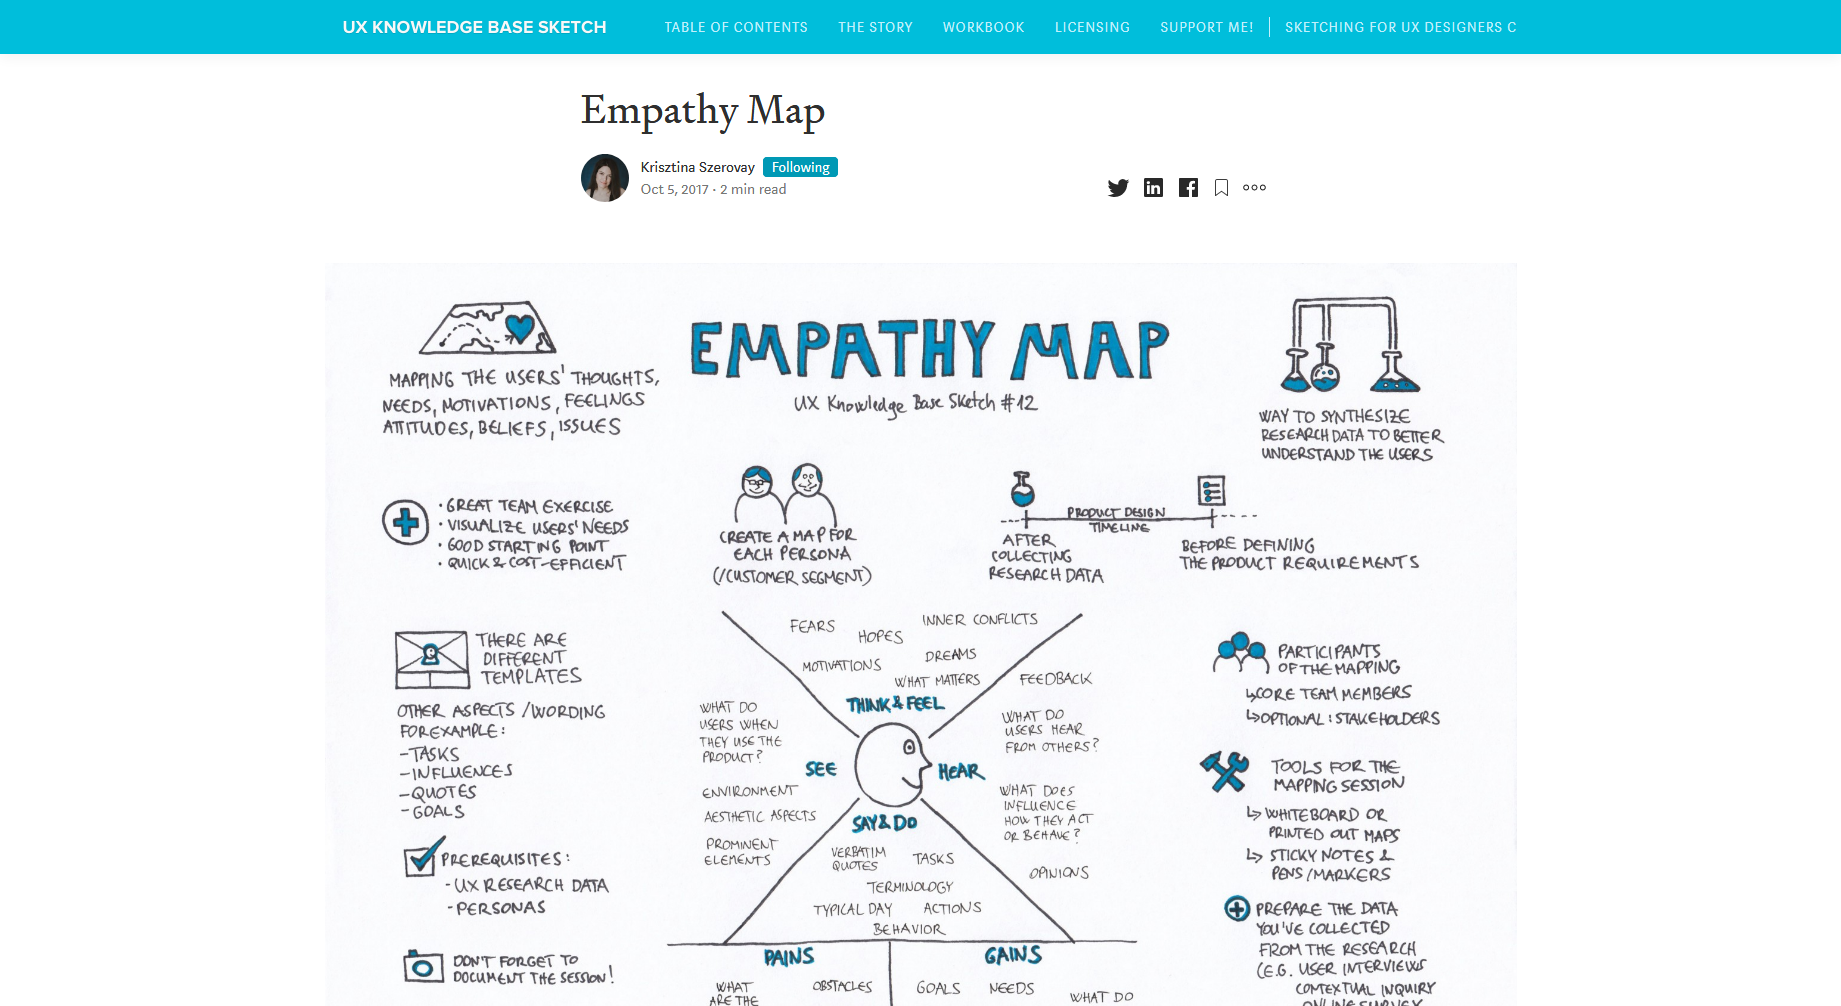 Empathy Maps — UX Knowledge Base Sketches